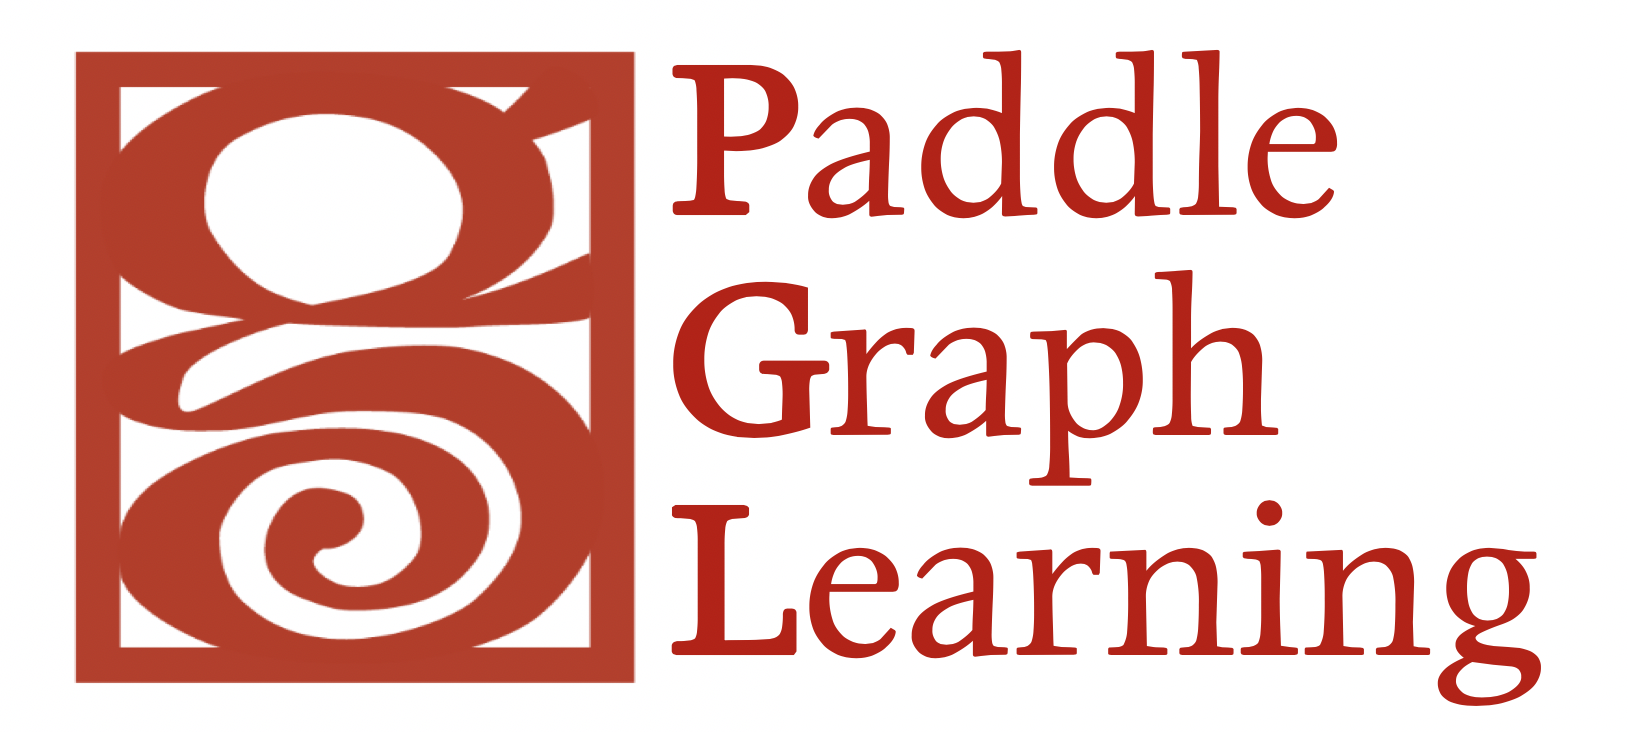 The logo of Paddle Graph Learning (PGL)